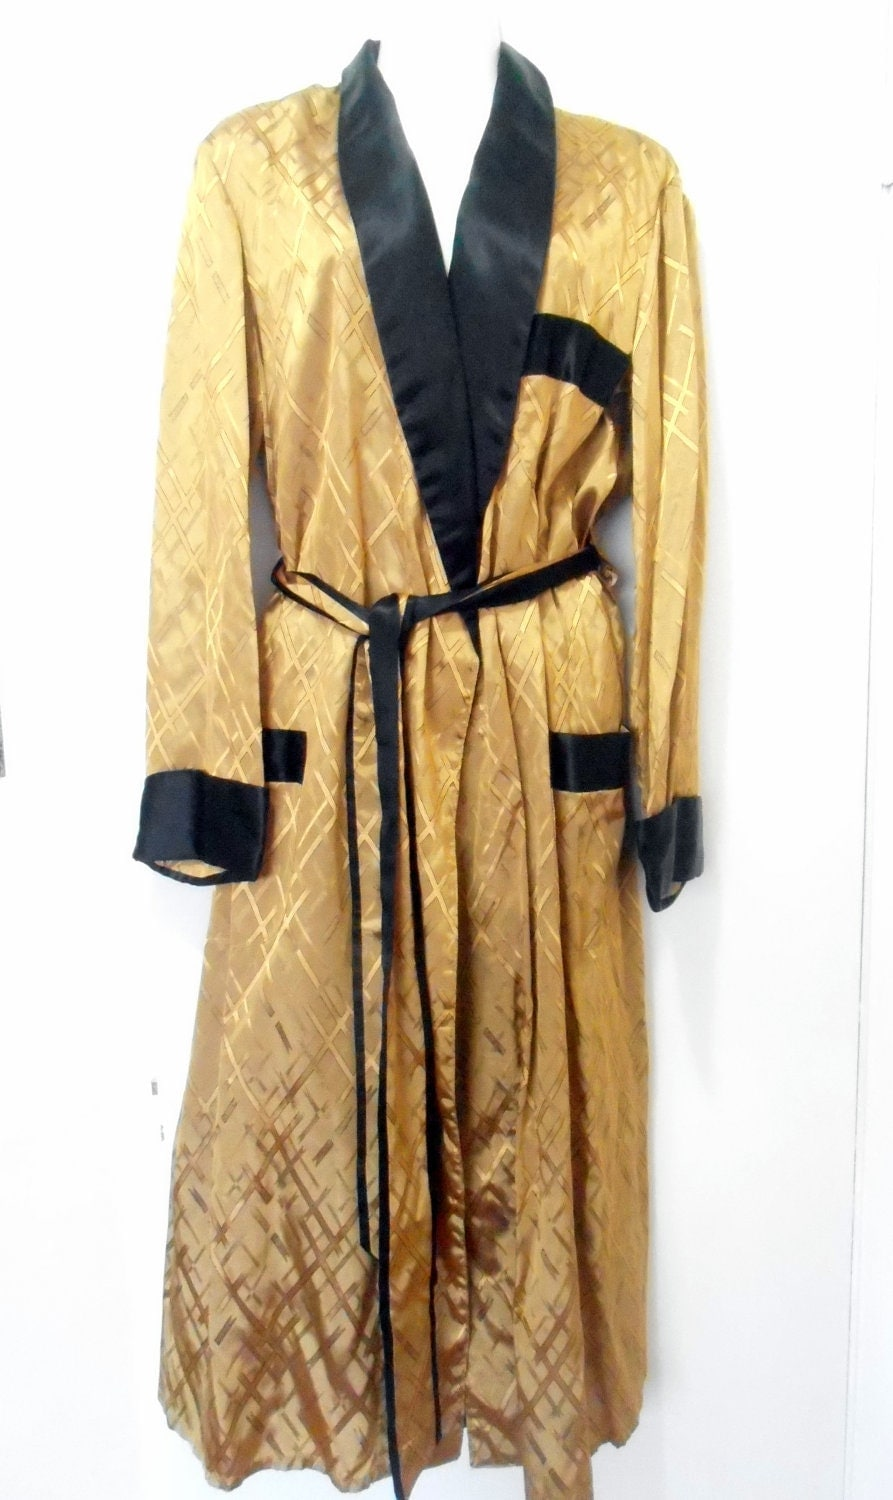 Shop the Latest Collection of Robes Pajamas, loungewear, and sleepwear for Men Online at hereuloadu5.ga FREE SHIPPING AVAILABLE!